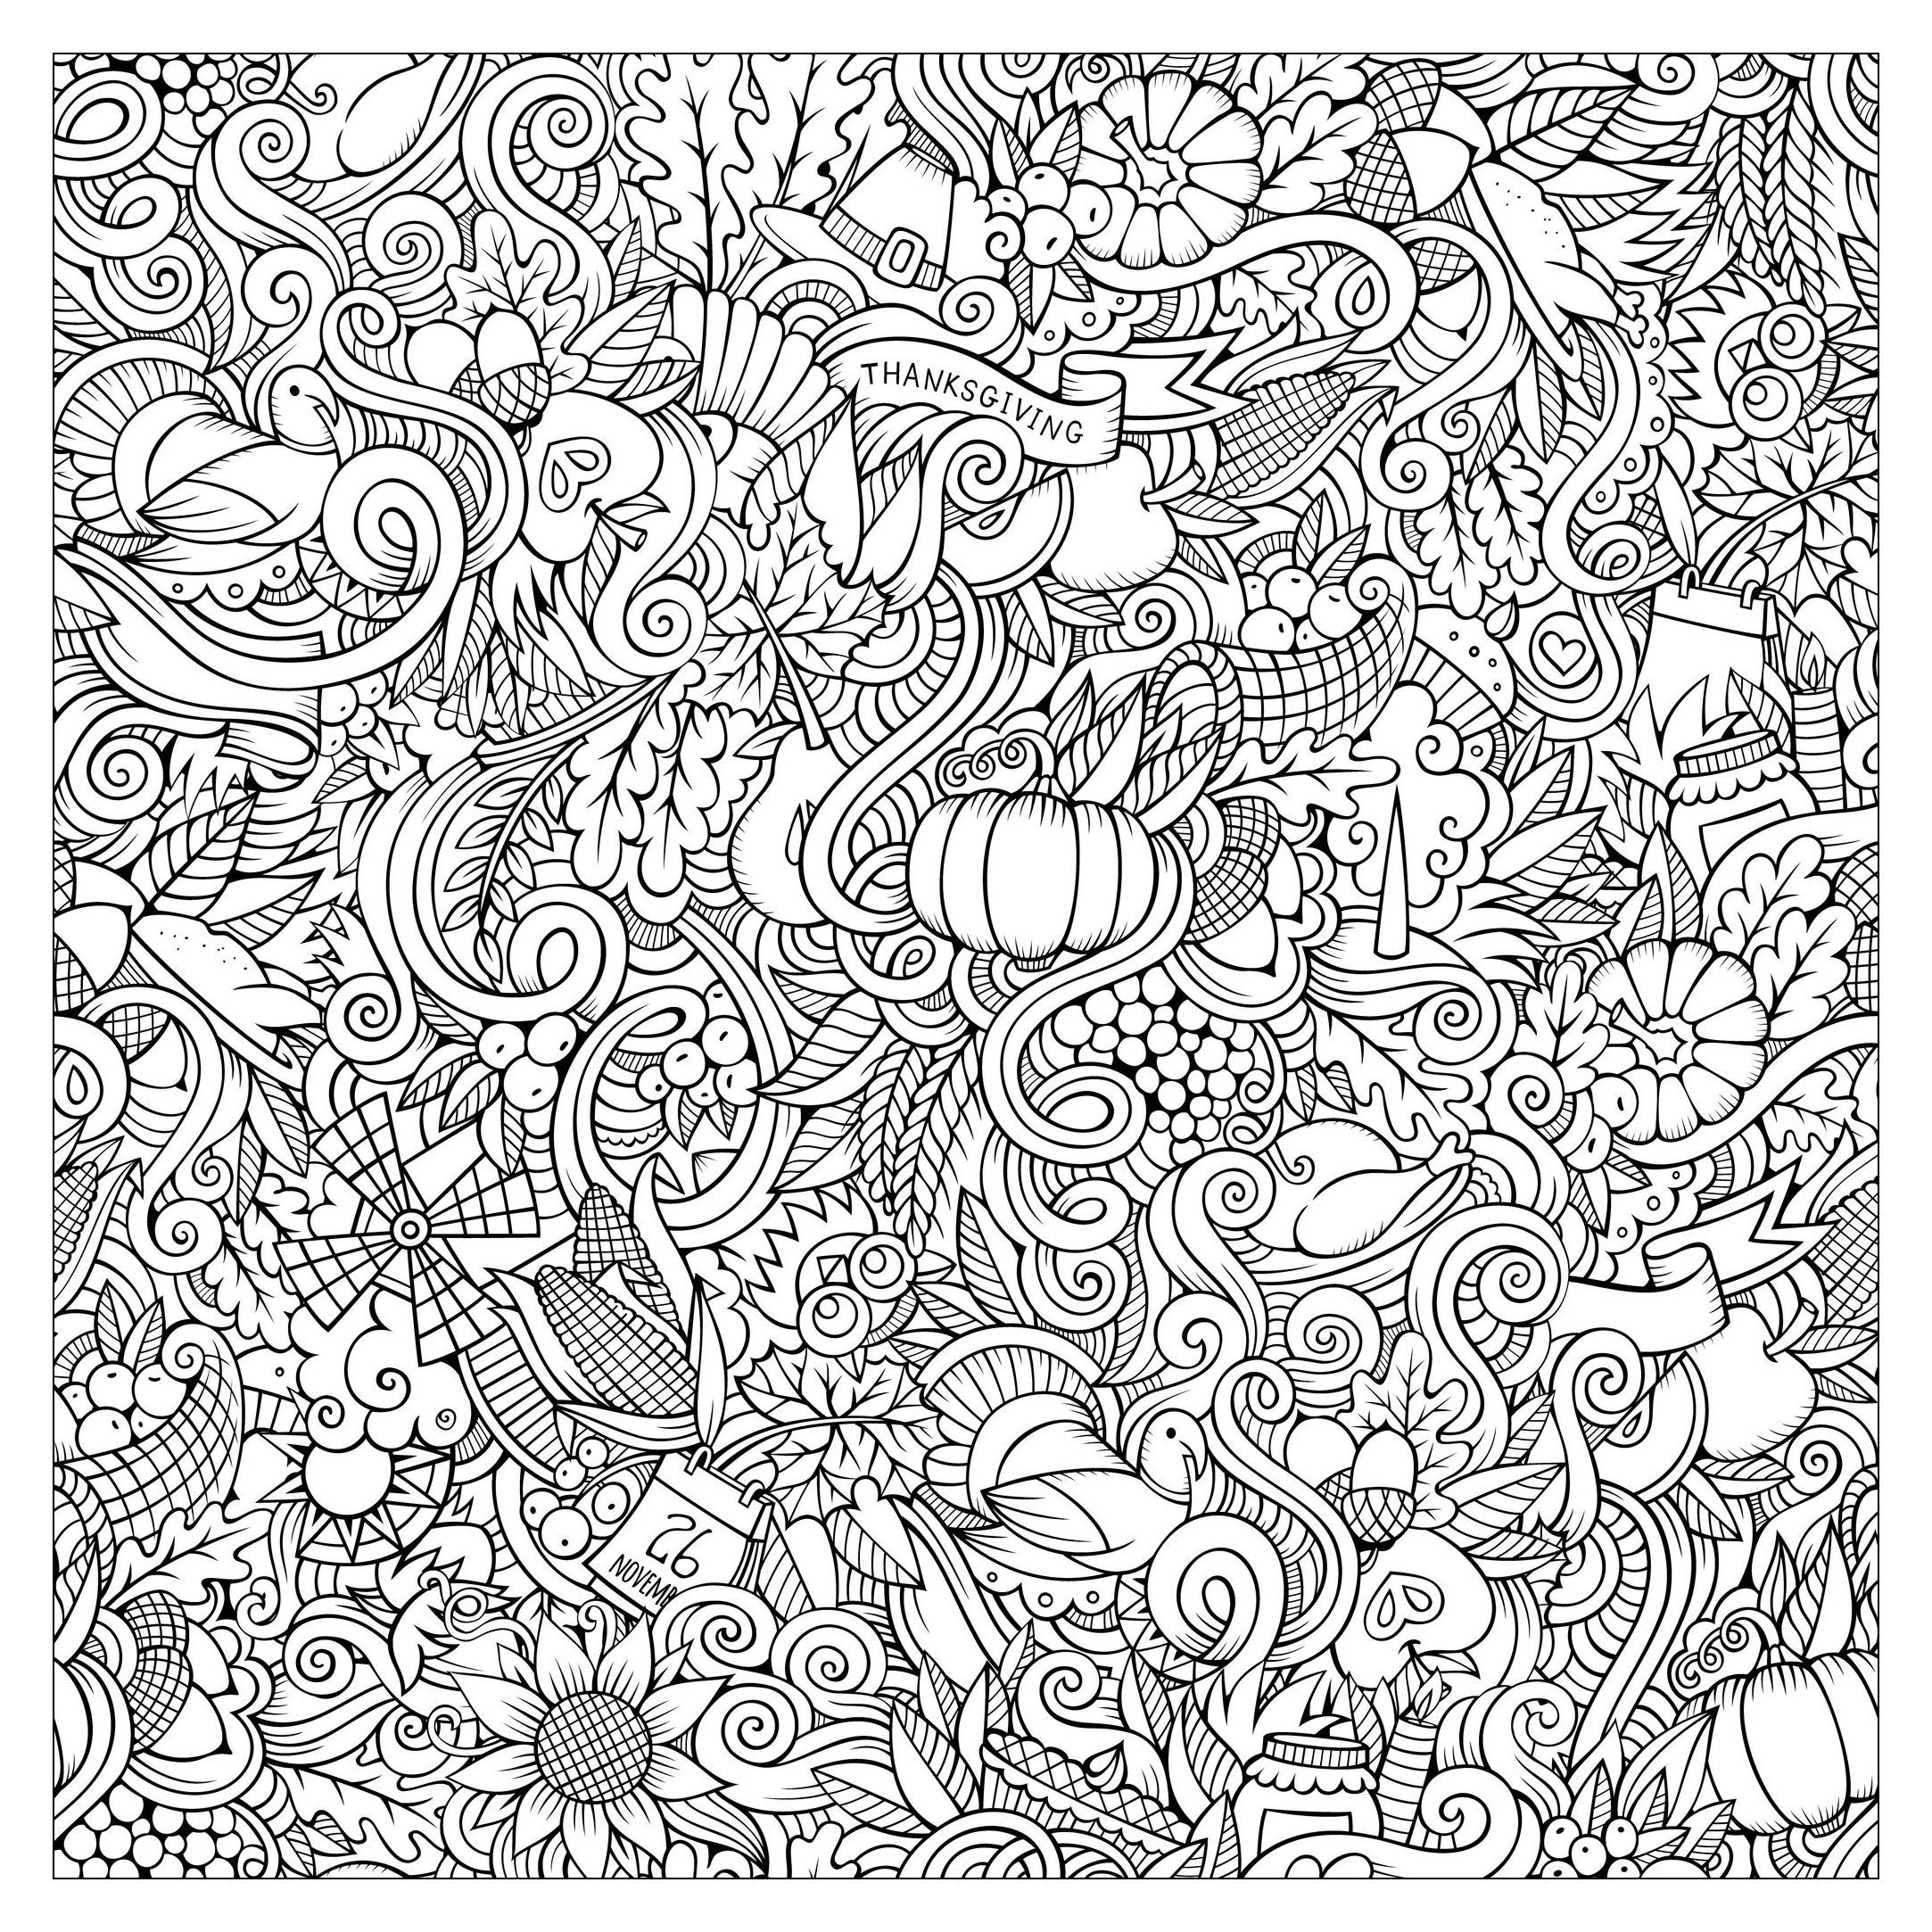 Thanksgiving Coloring Page For Adults